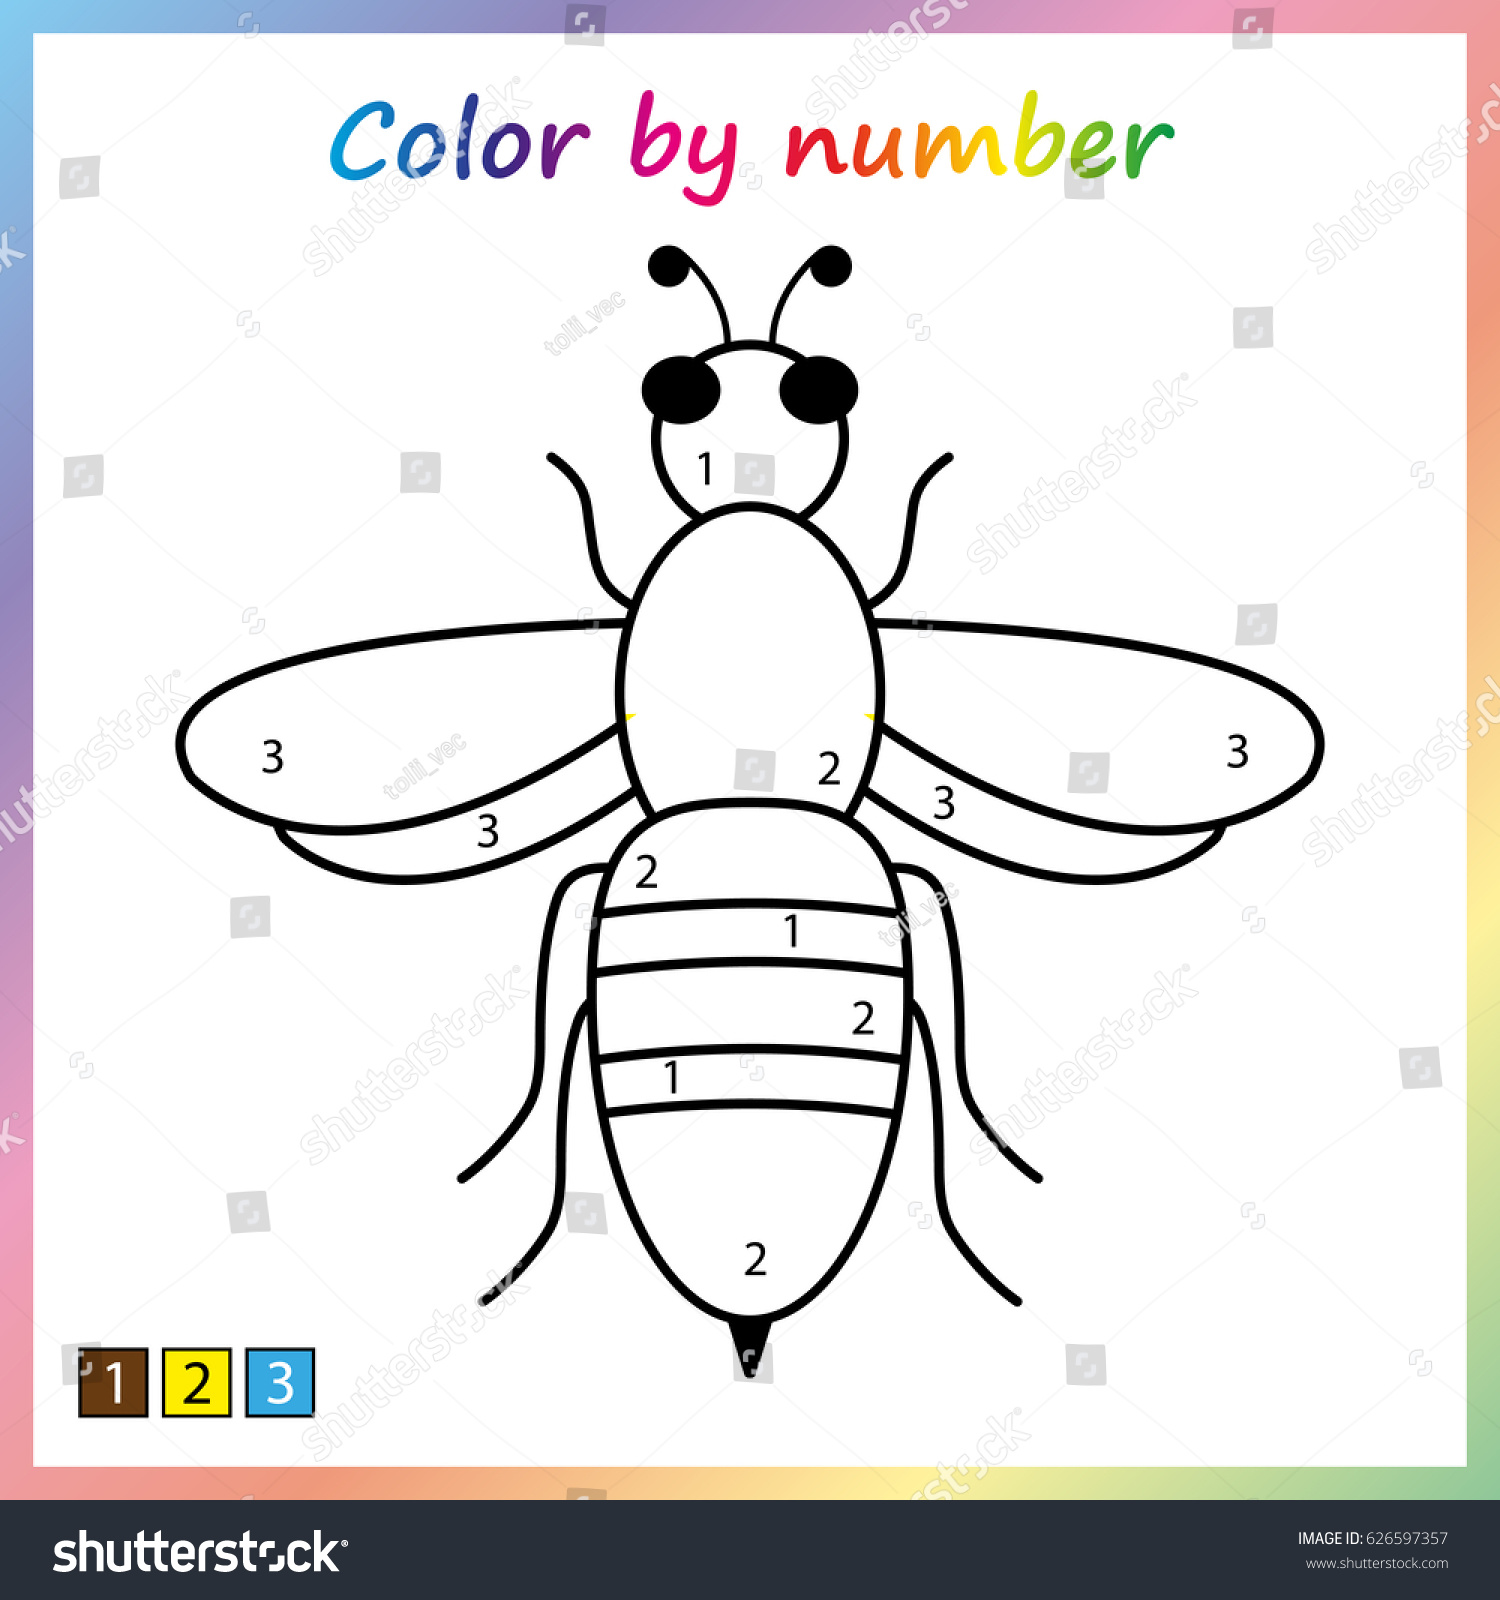 Bee Painting Page Color By Numbers Stock Vector 626597357 - Shutterstock